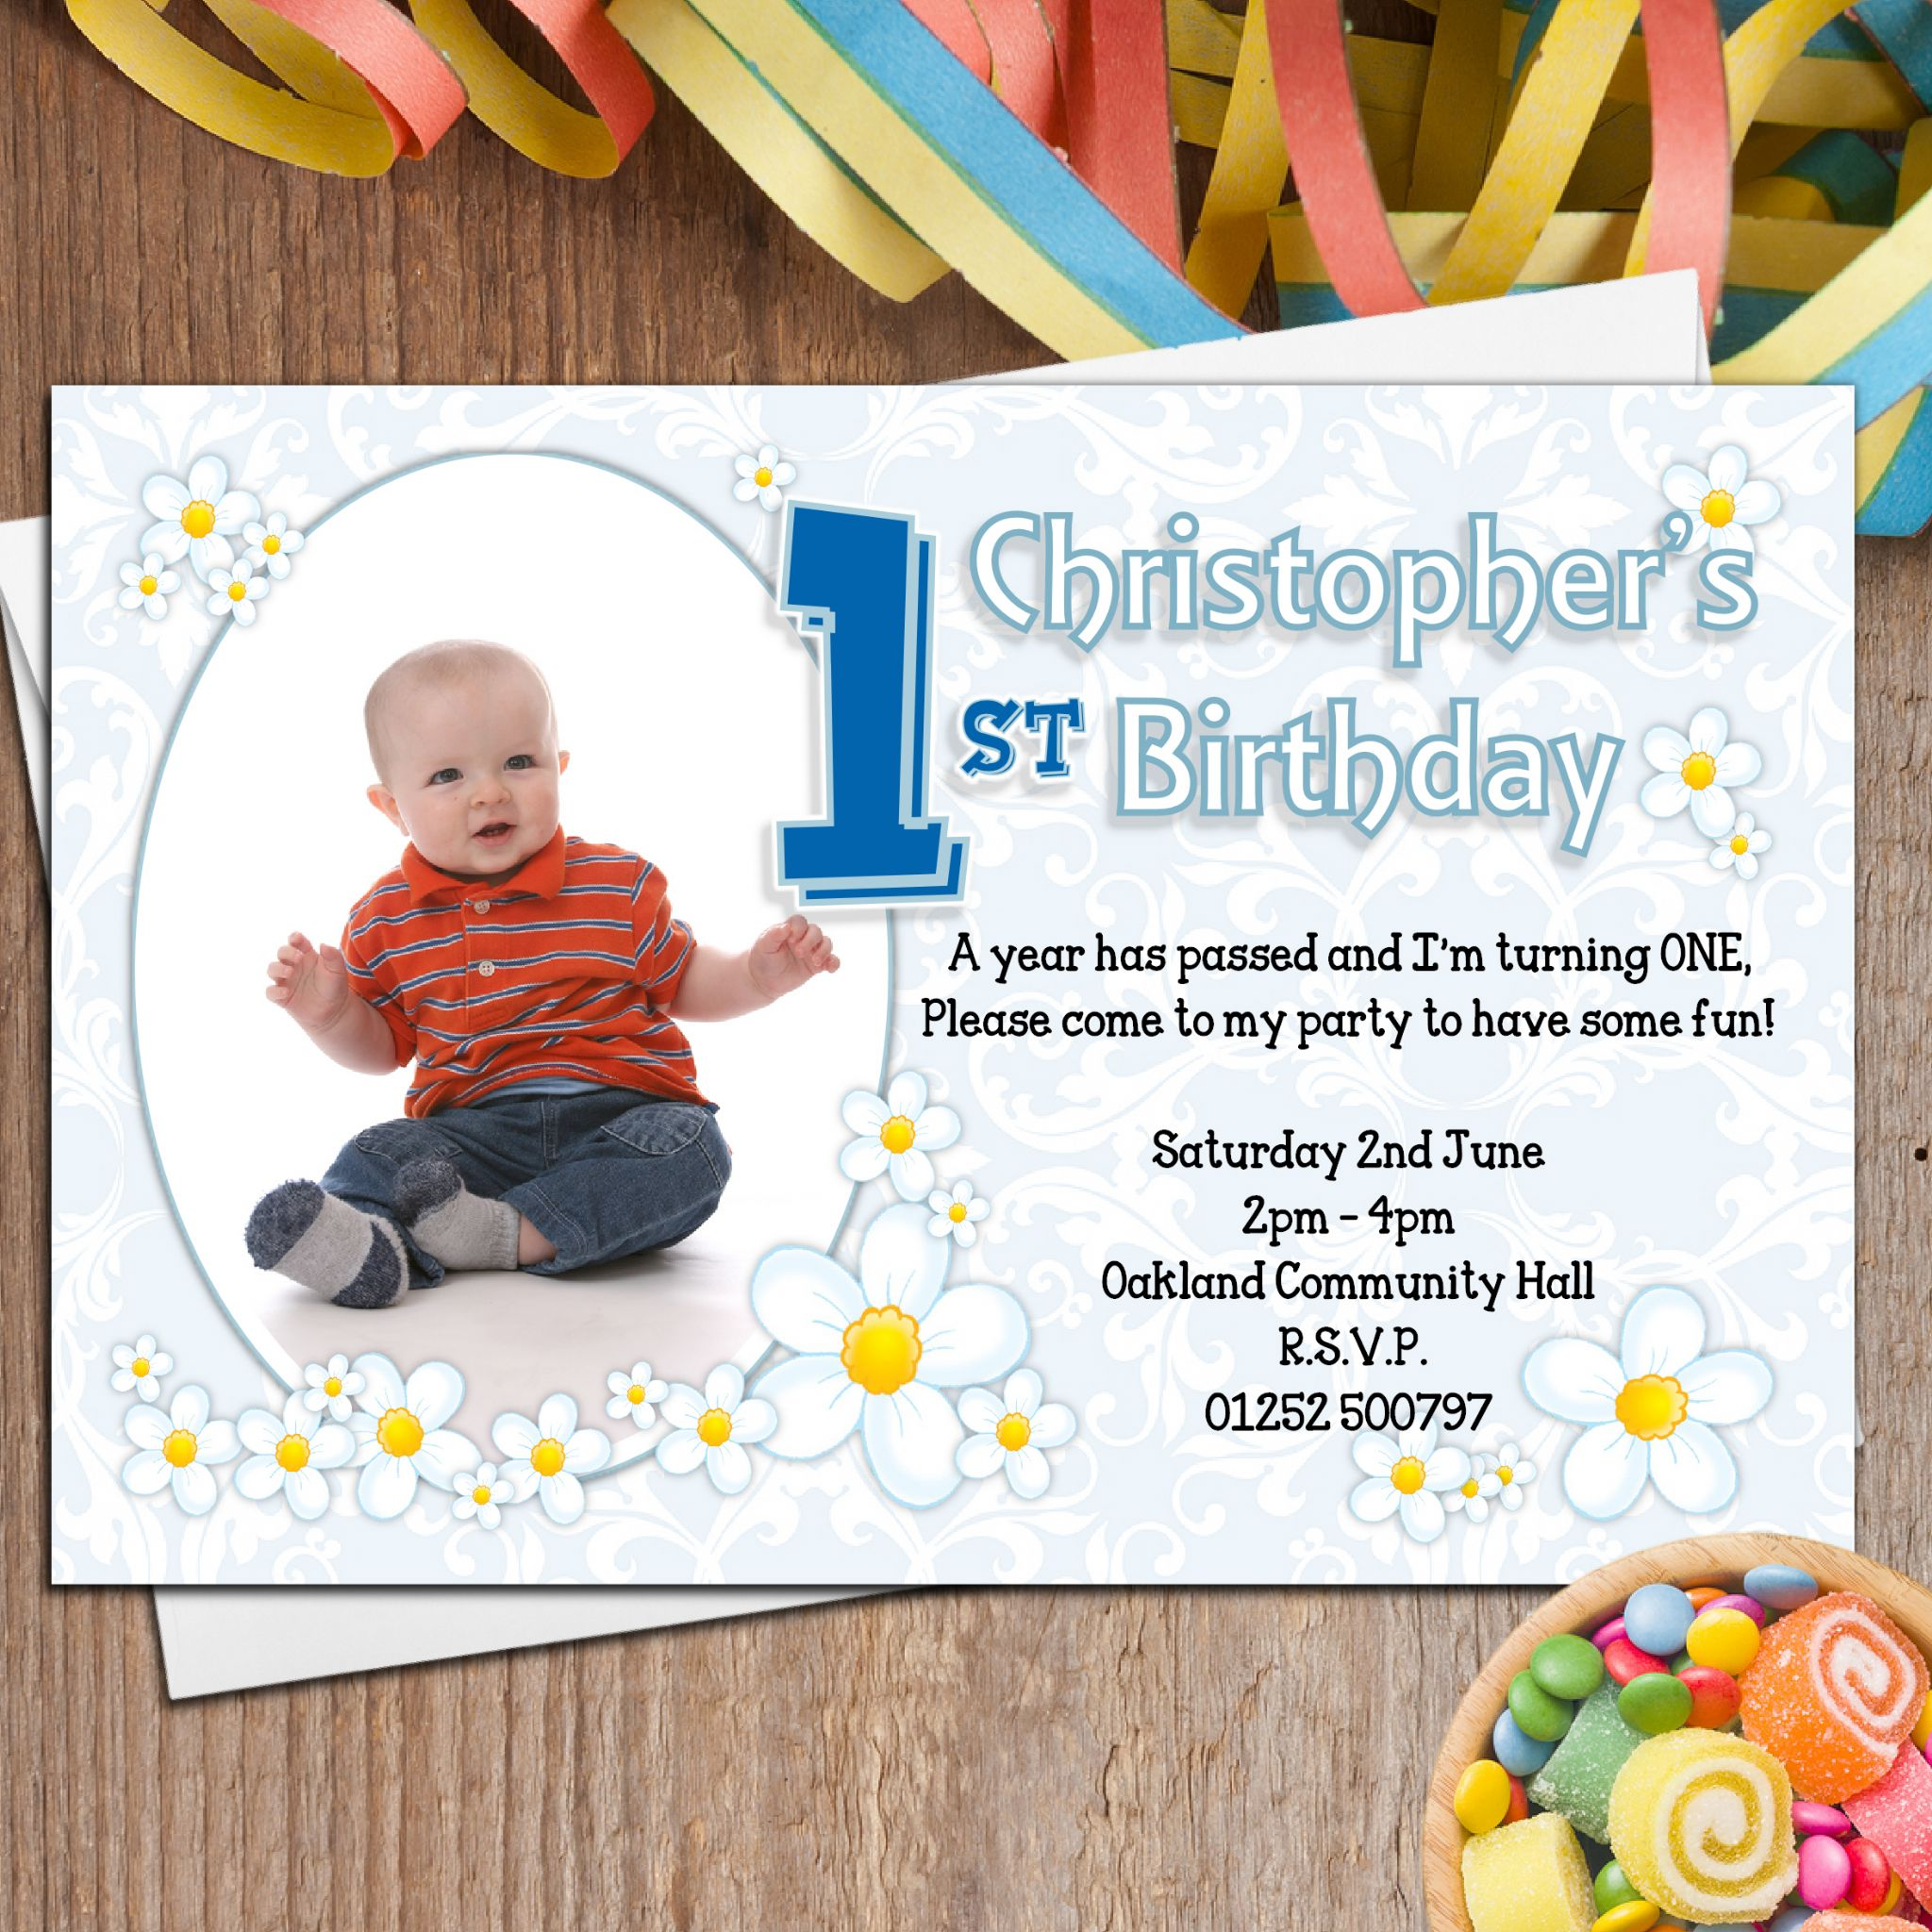 Personalized Birthday Invitations For Boys